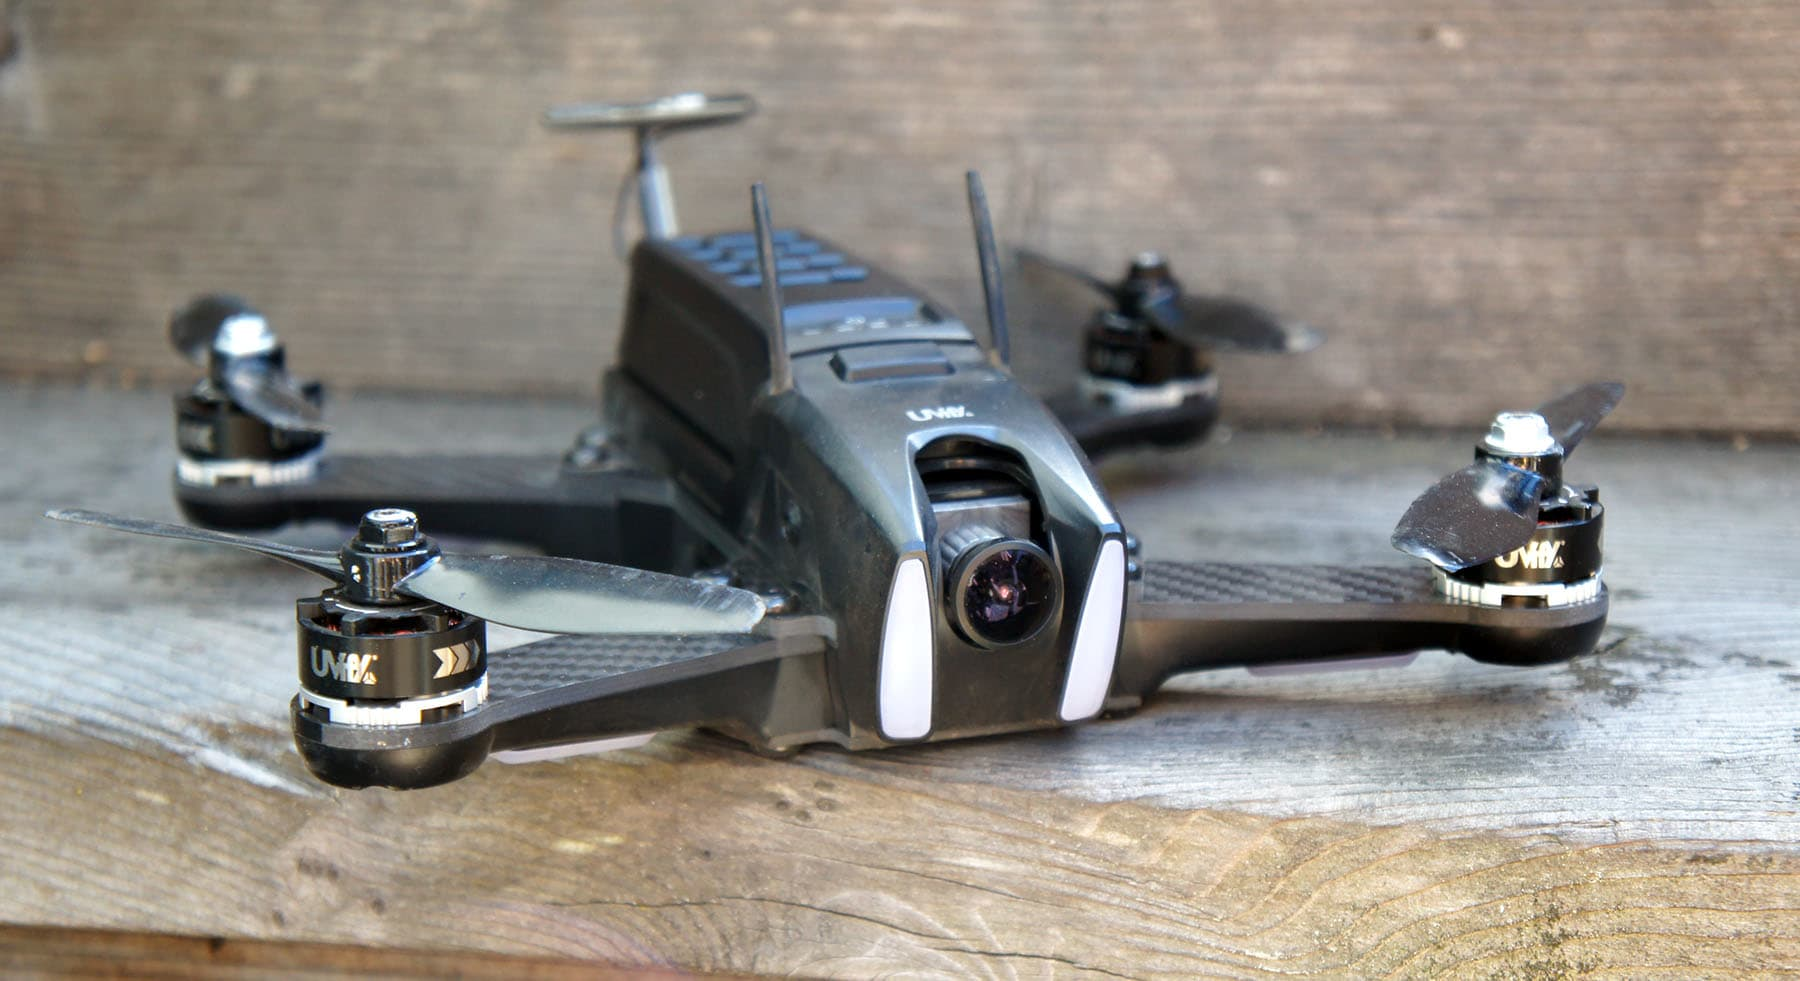 UVify's Draco drone is fast, furious fun for wannabe racers